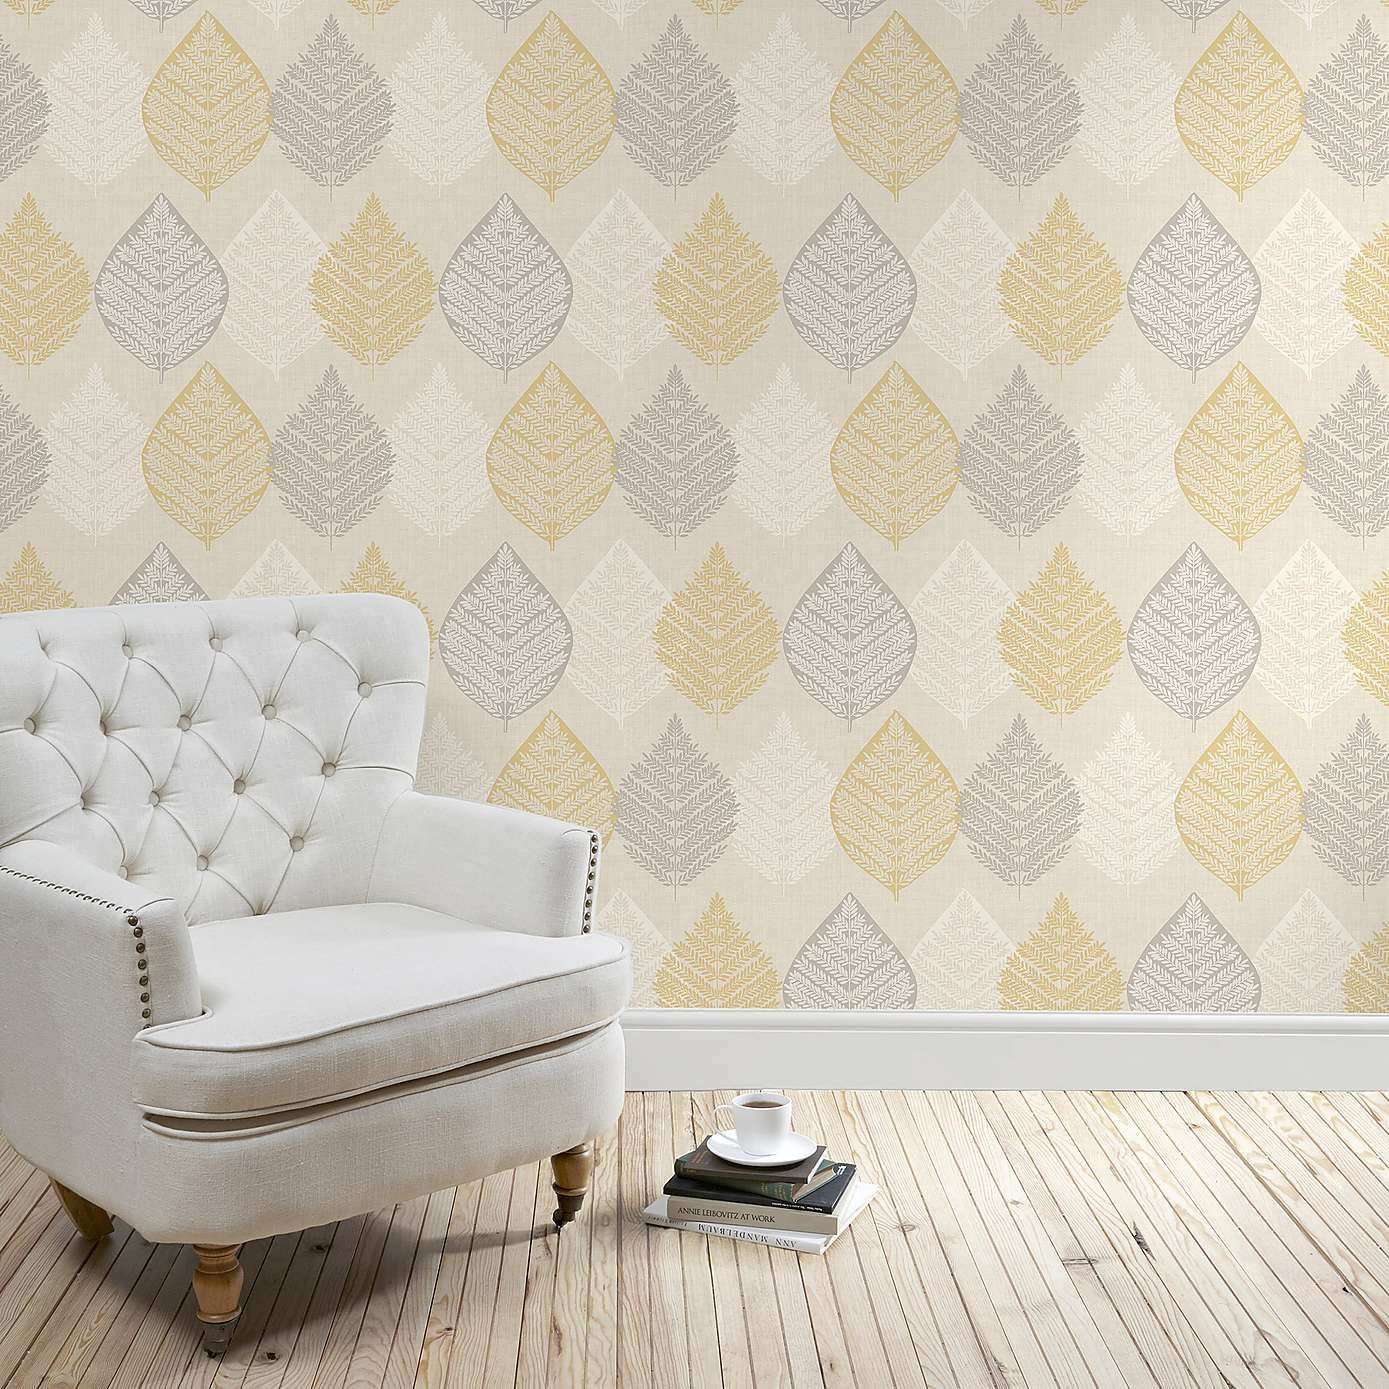 Living room wallpaper texture - In A Sophisticated Grey Shade This Patterned Wallpaper Features An Elegant Scroll Design With A Mixture Of Matt And Glitter Textures